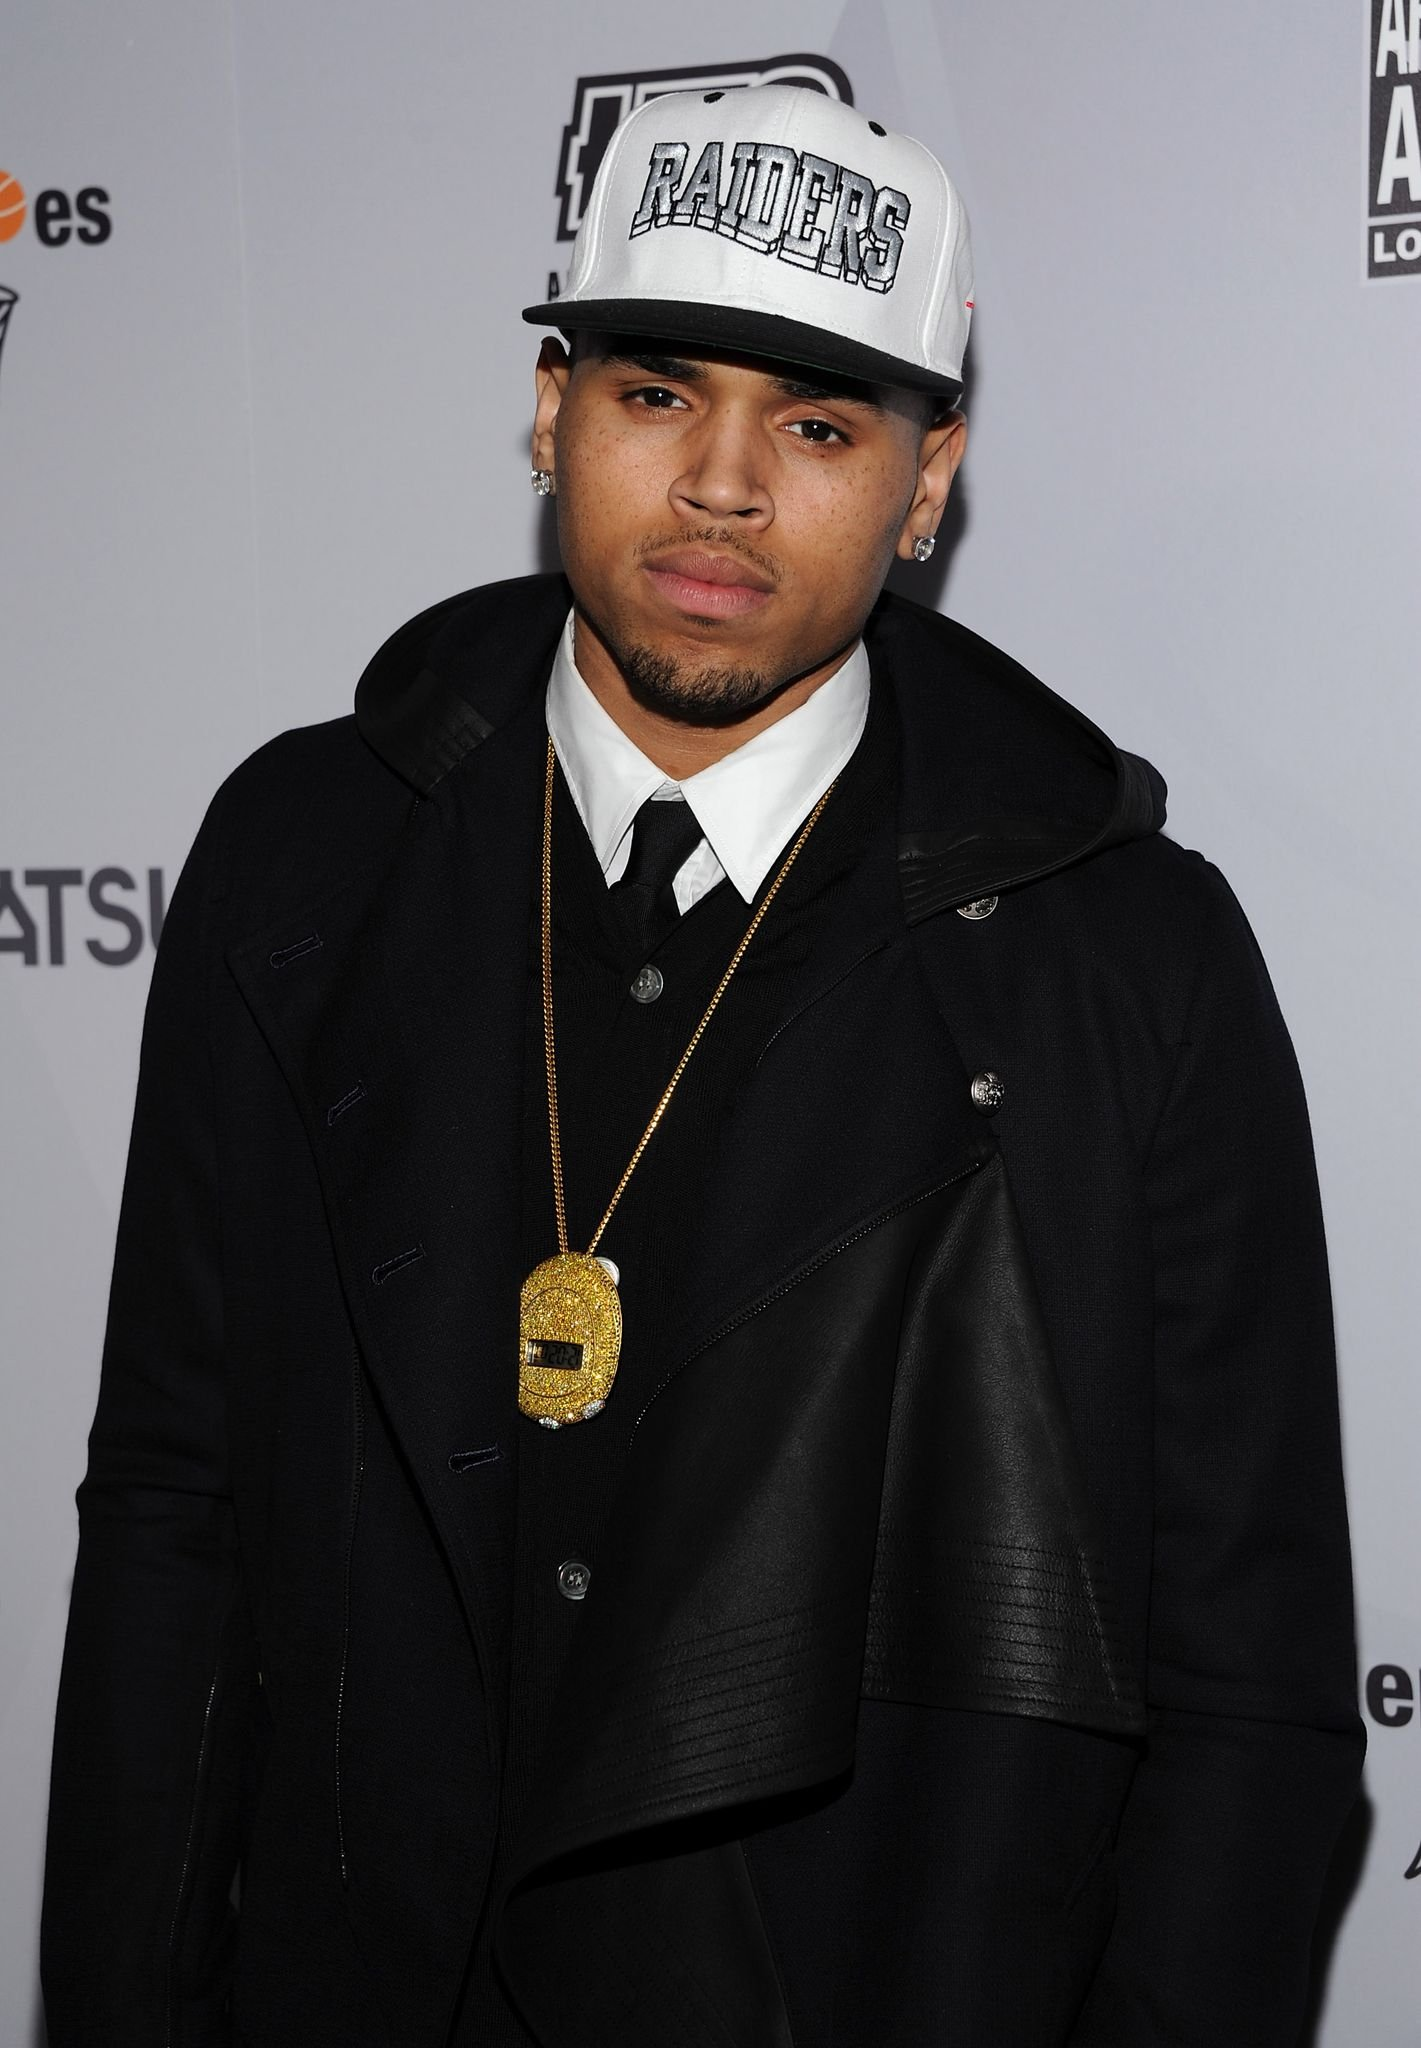 Chris Brown at a launch party on February 18, 2011 in Los Angeles. | Photo: Getty Images